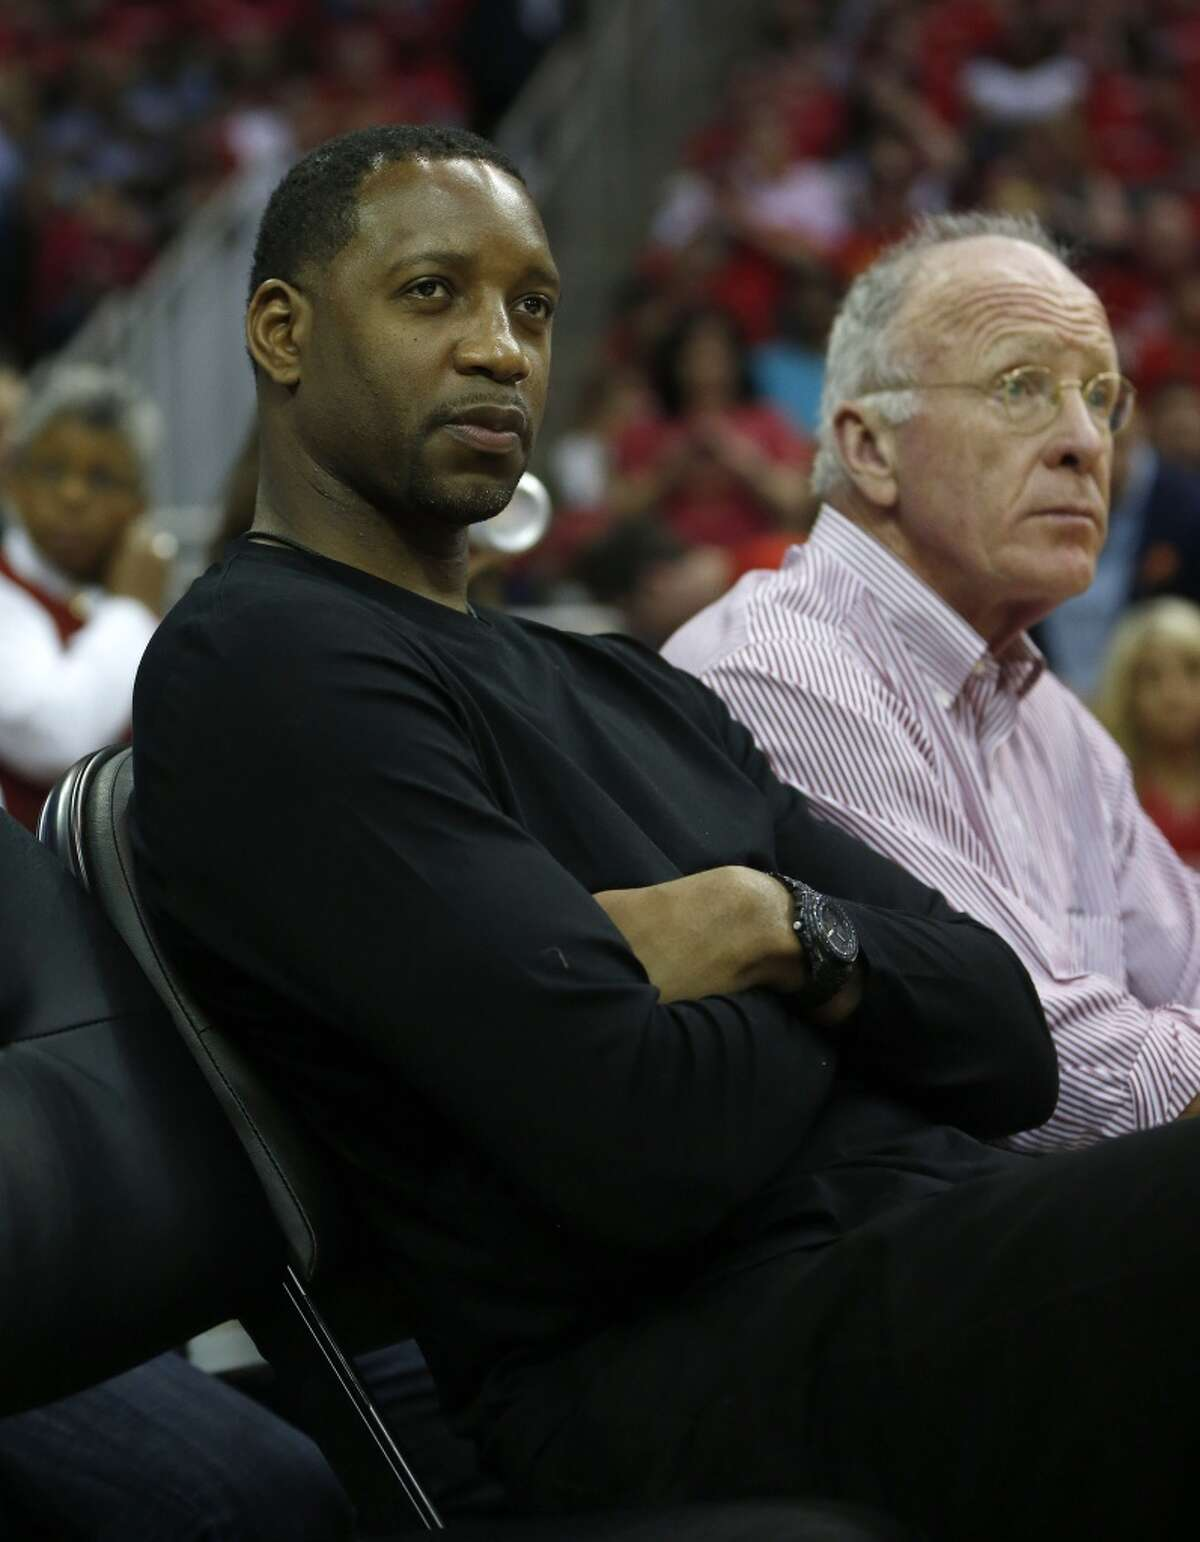 Former Rockets star Tracy McGrady will be joining the media contingent as an NBA analyst for ESPN. Click through the gallery to see photos of McGrady through the years.